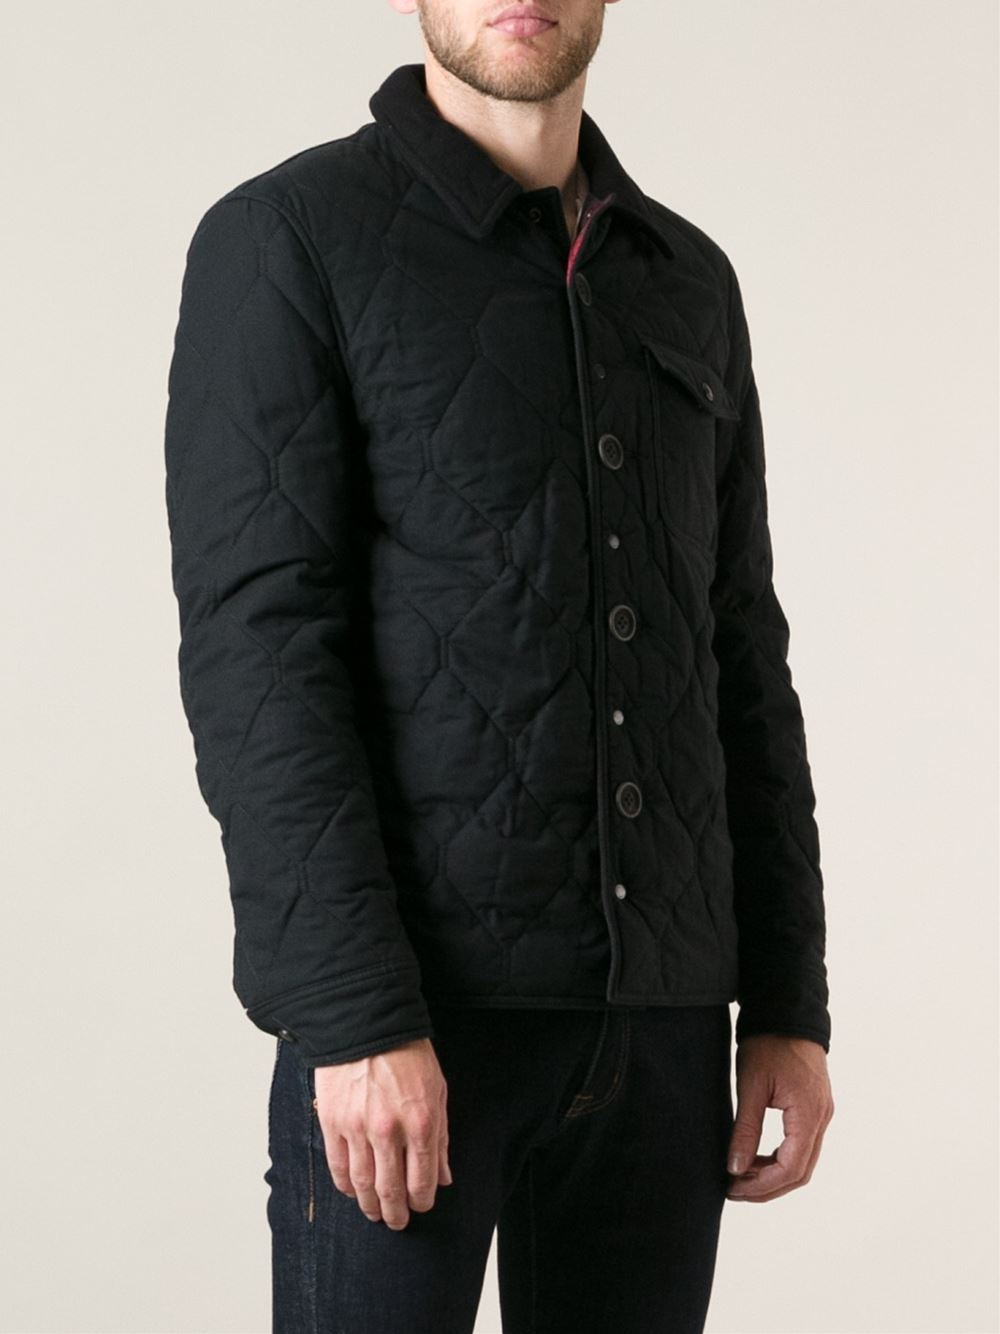 Burberry Brit Diamond Quilted Jacket In Black For Men Lyst